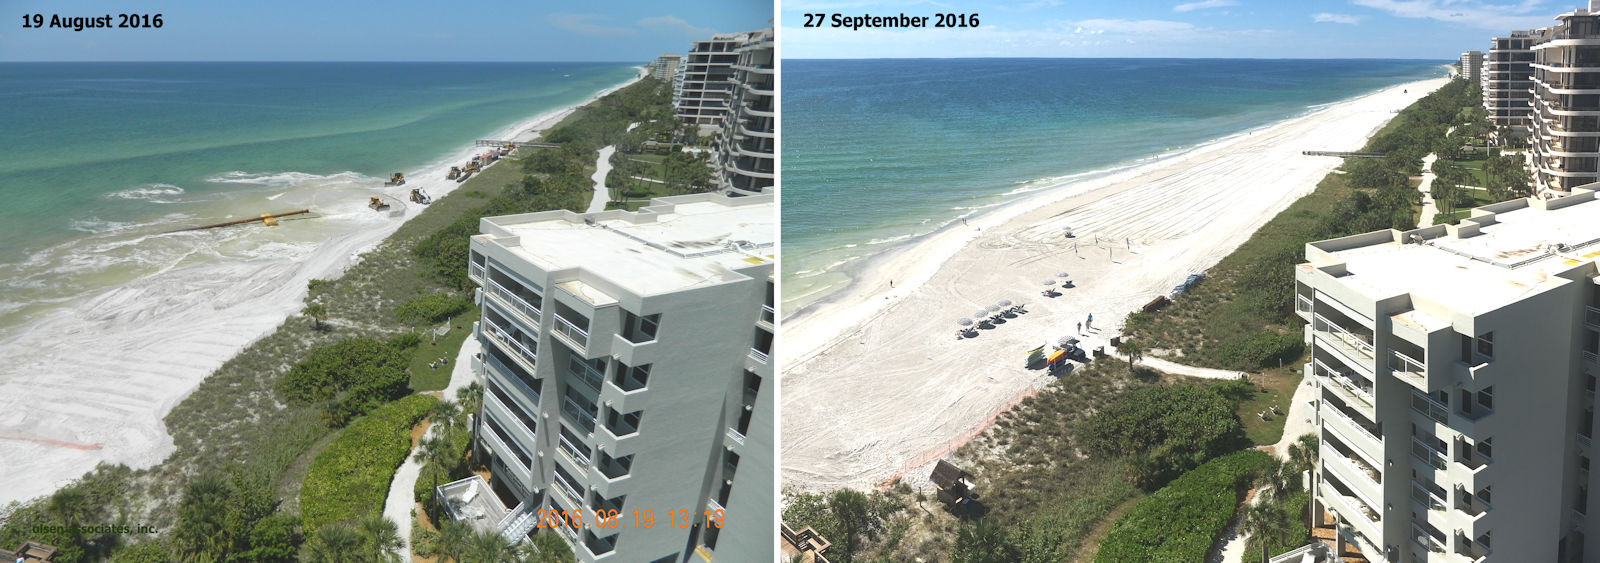 LBK New Pass Fill Before and After 19Aug to 27Sep16 lr